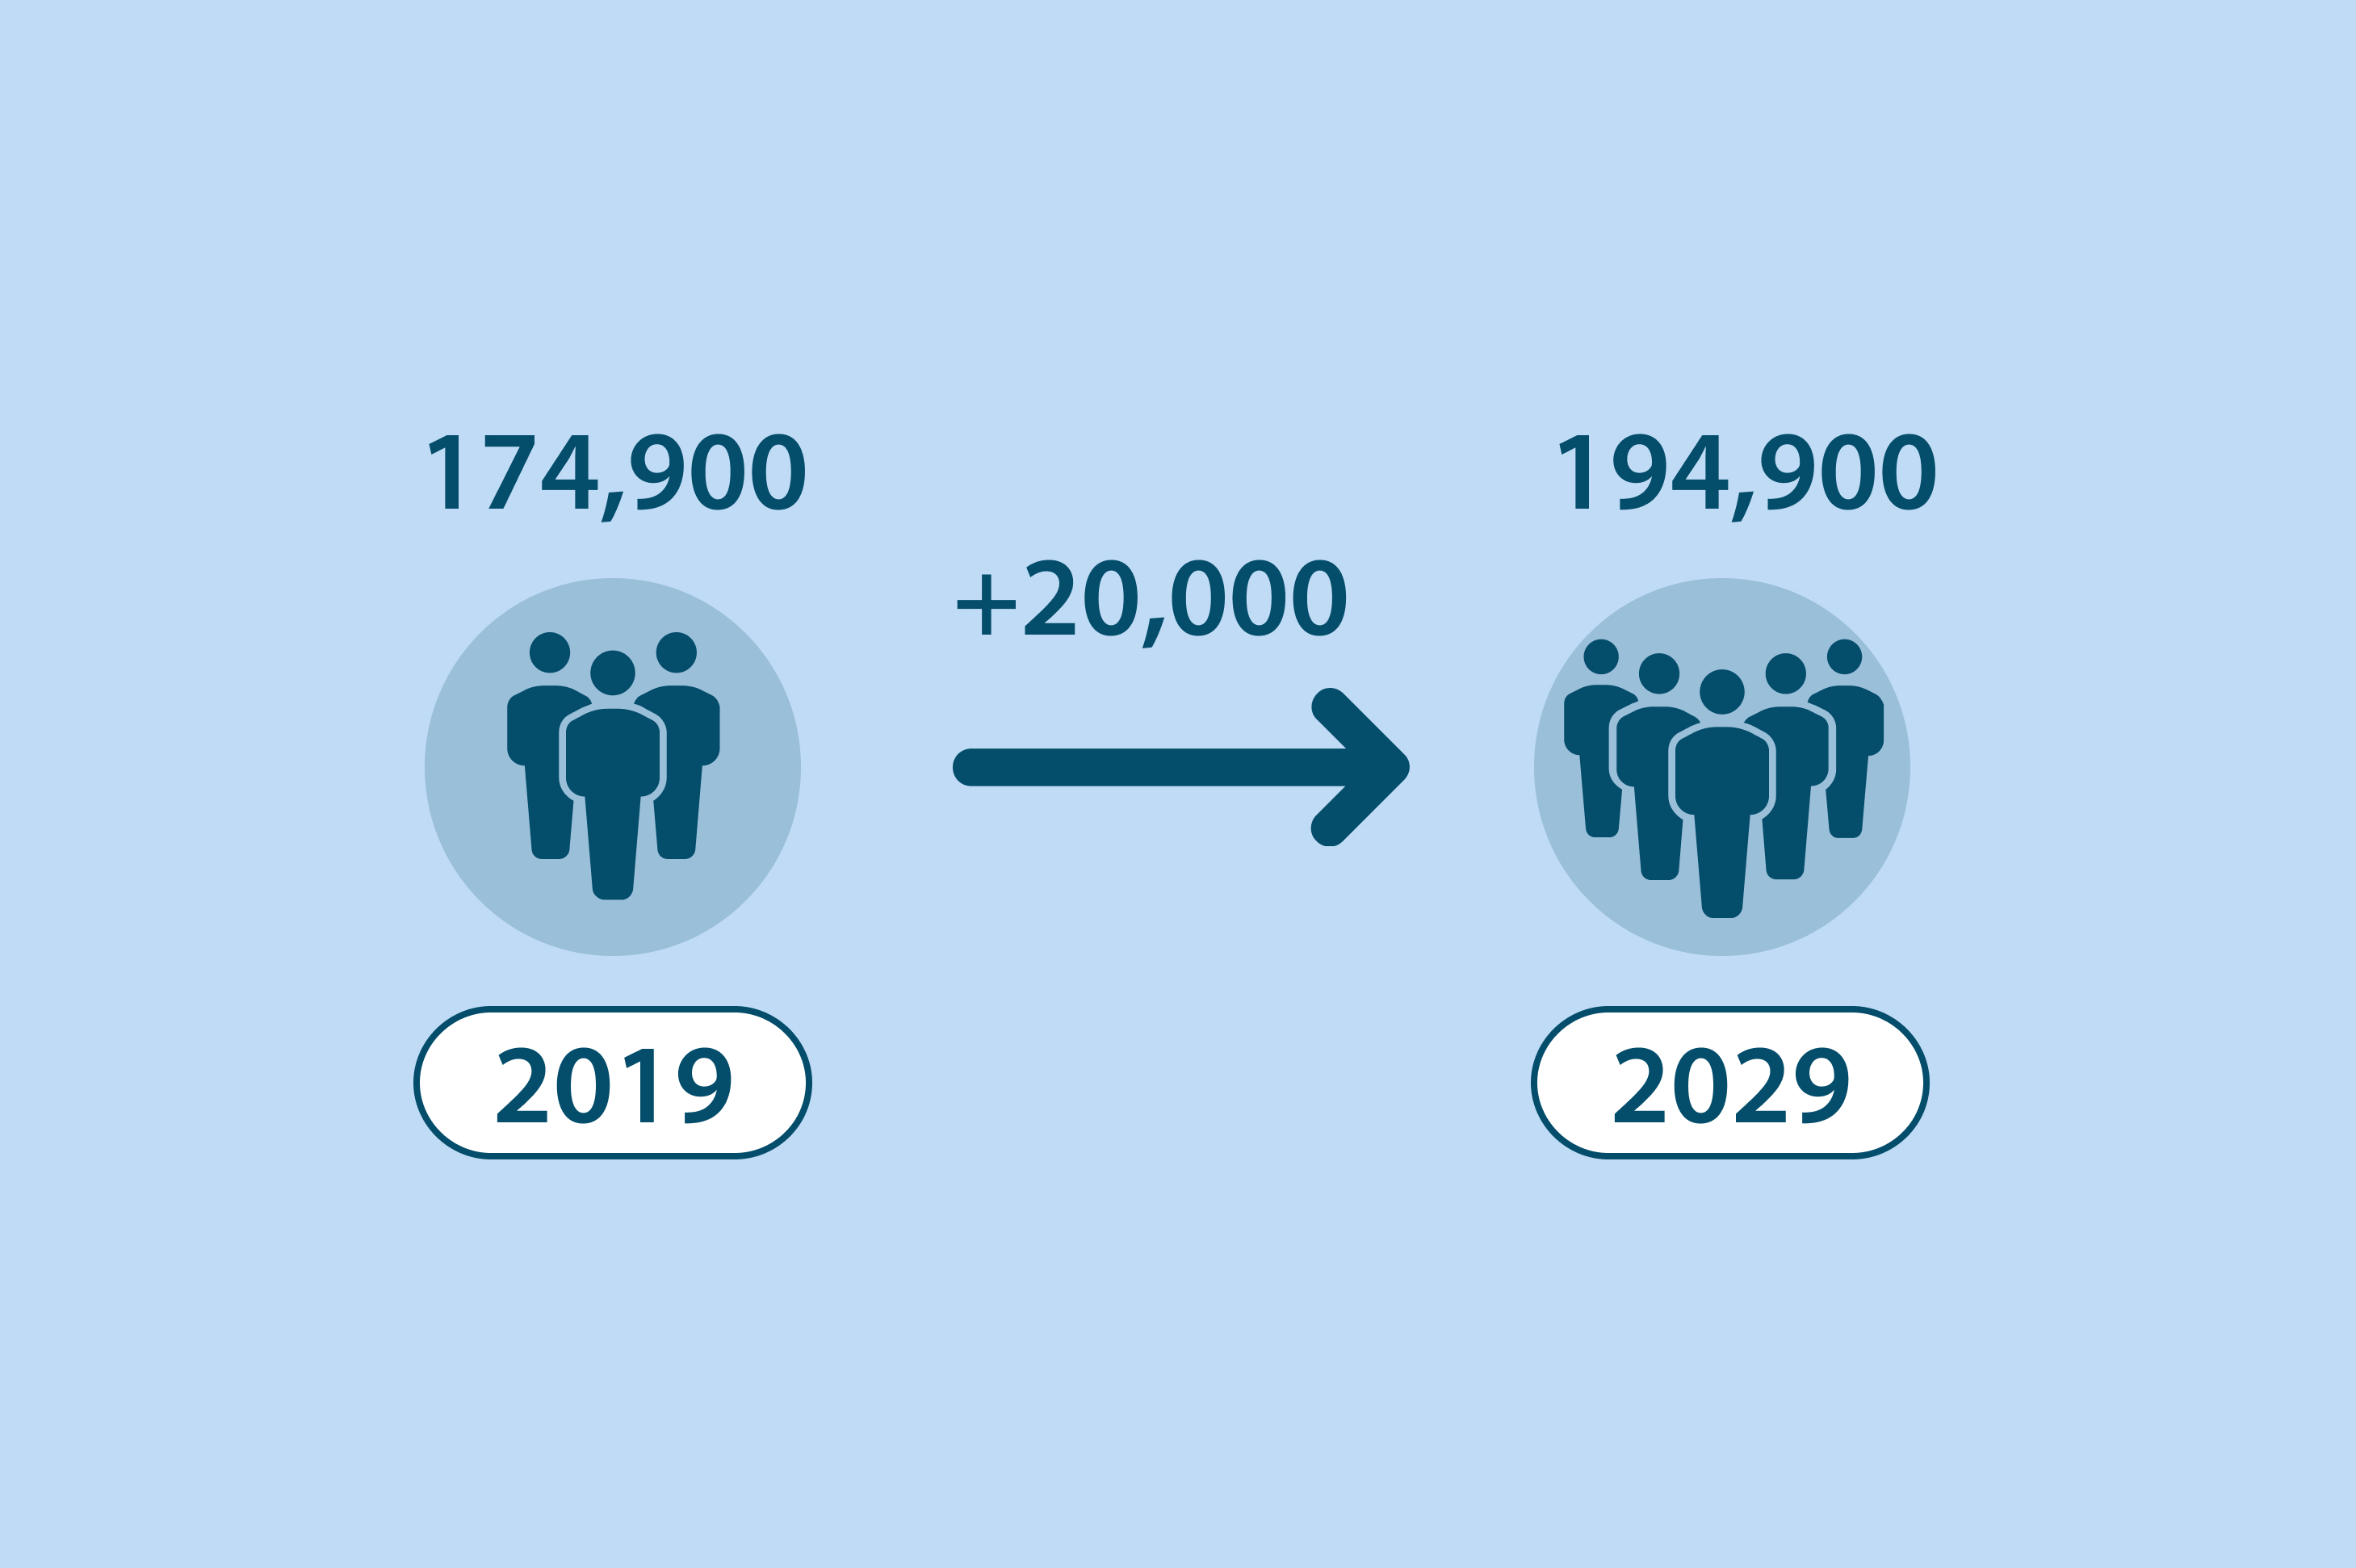 graphic showing increase of population in Kingston from 174,900 in 2019 to 194,900 in 2029